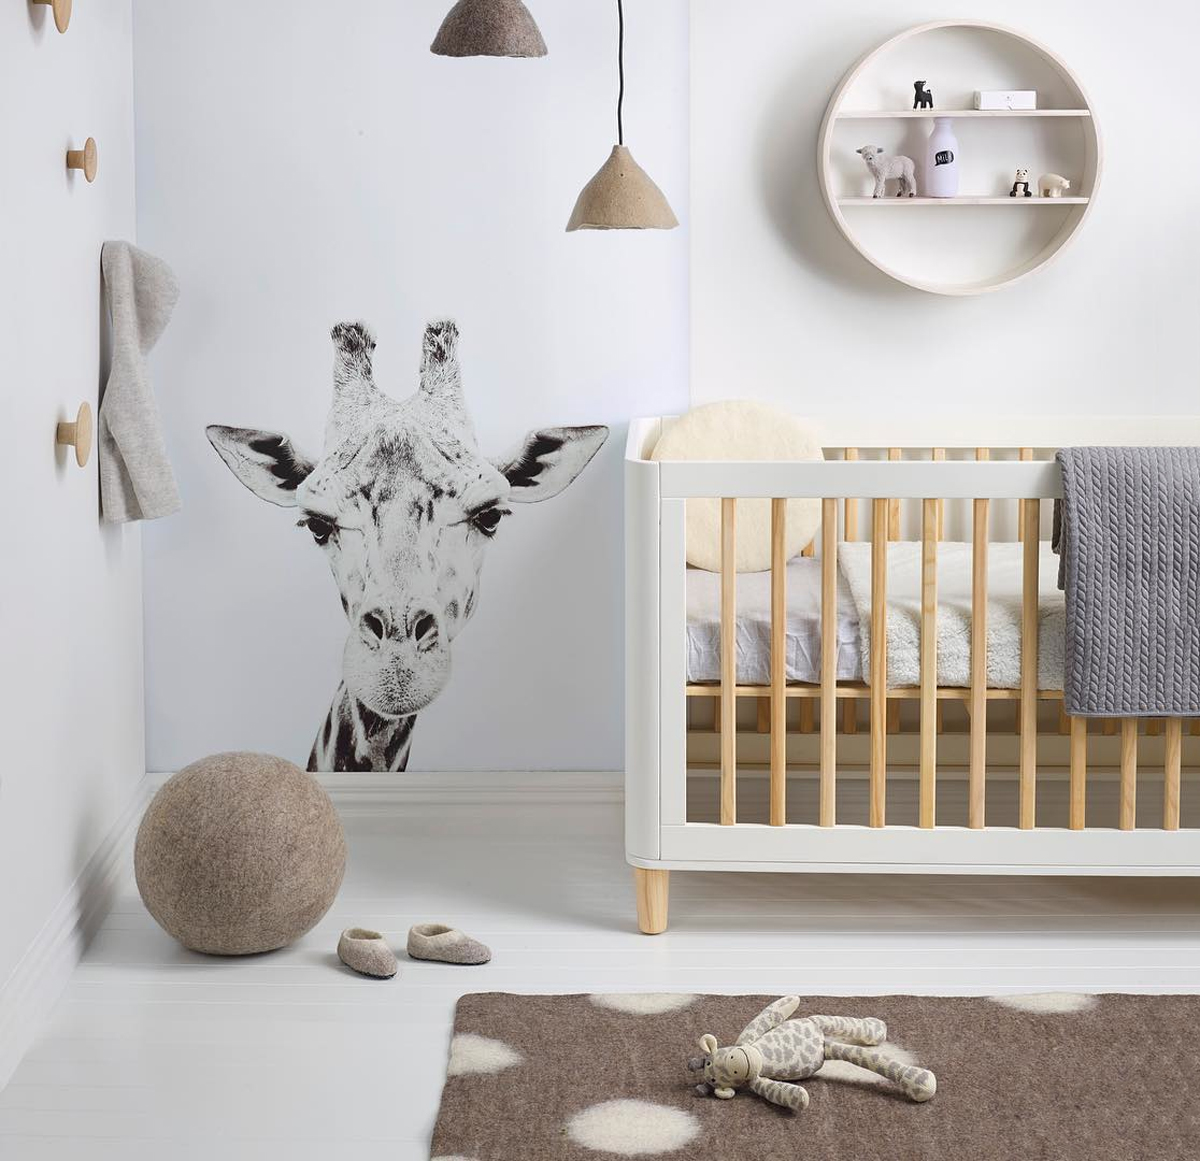 187 Preparing Your Kids Room For Autumn